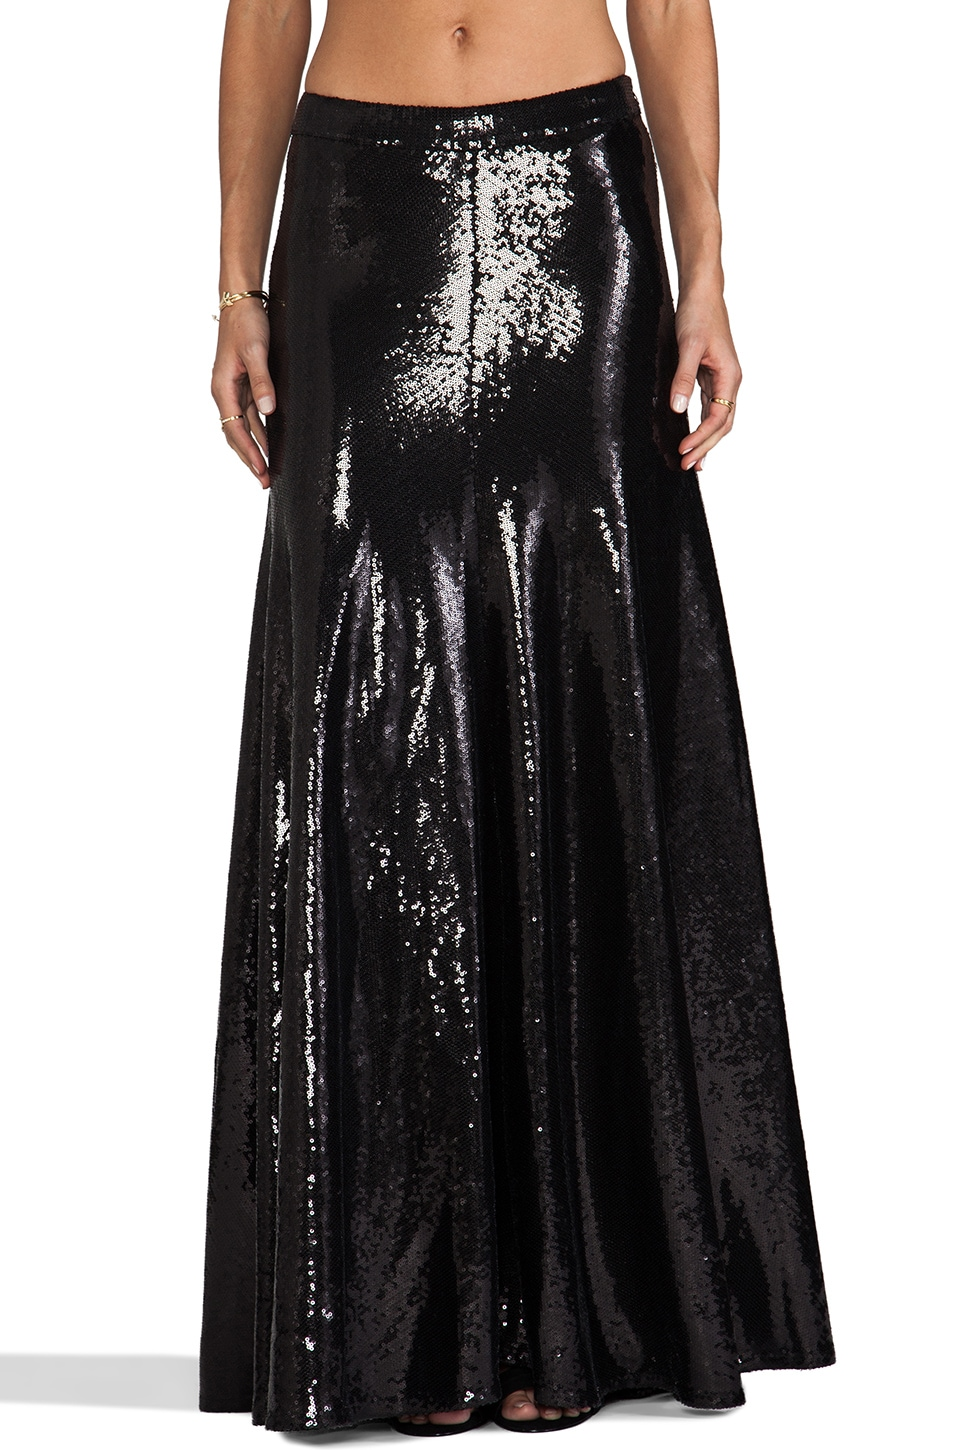 Wildfox Couture Cecilia Sequin Maxi Skirt in Black